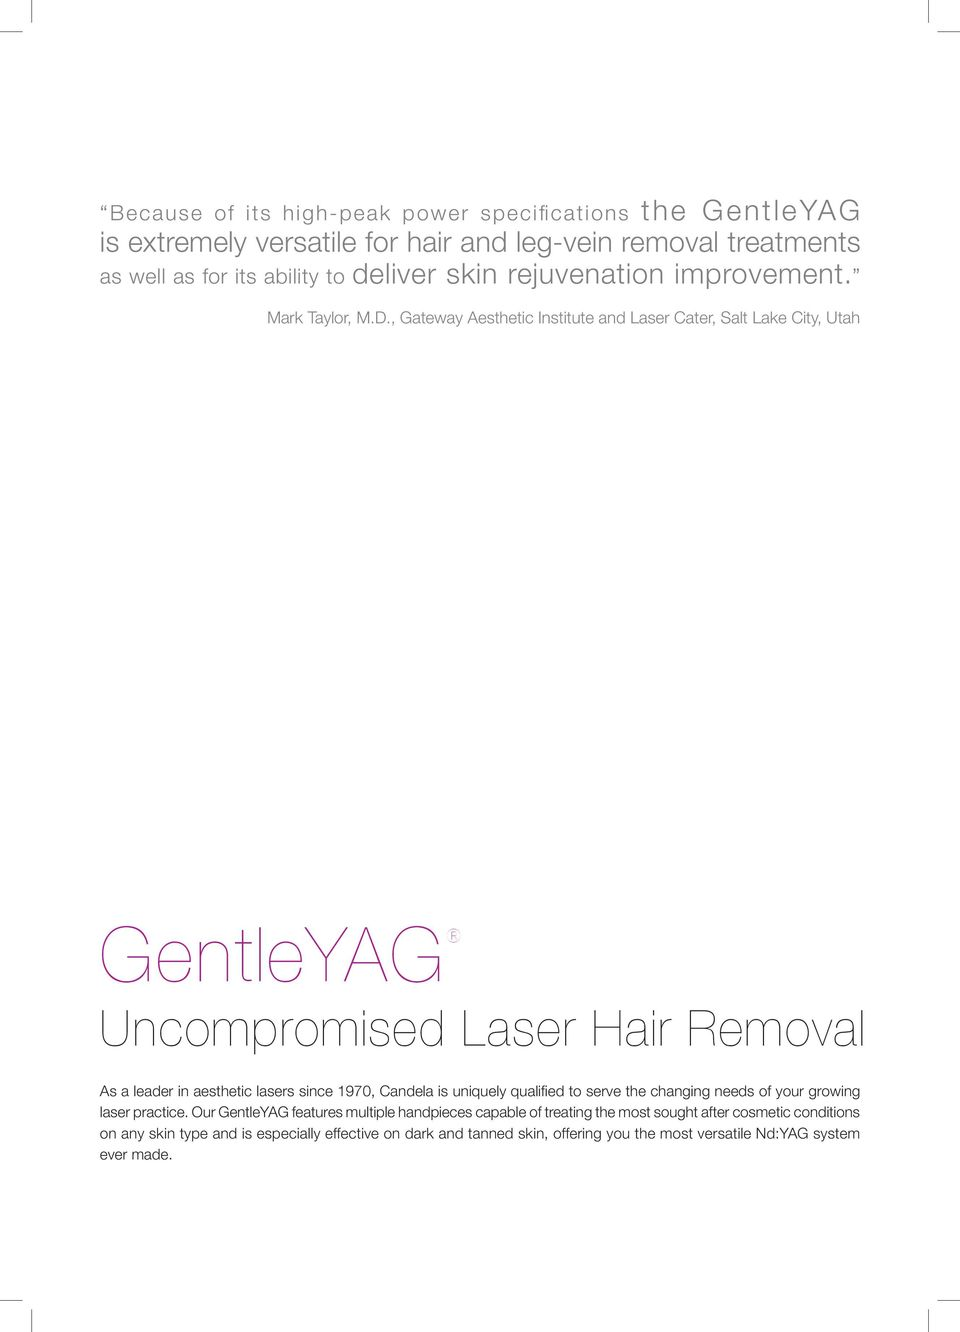 , Gateway Aesthetic Institute and Laser Cater, Salt Lake City, Utah GentleYAG Uncompromised Laser Hair Removal As a leader in aesthetic lasers since 1970, Candela is